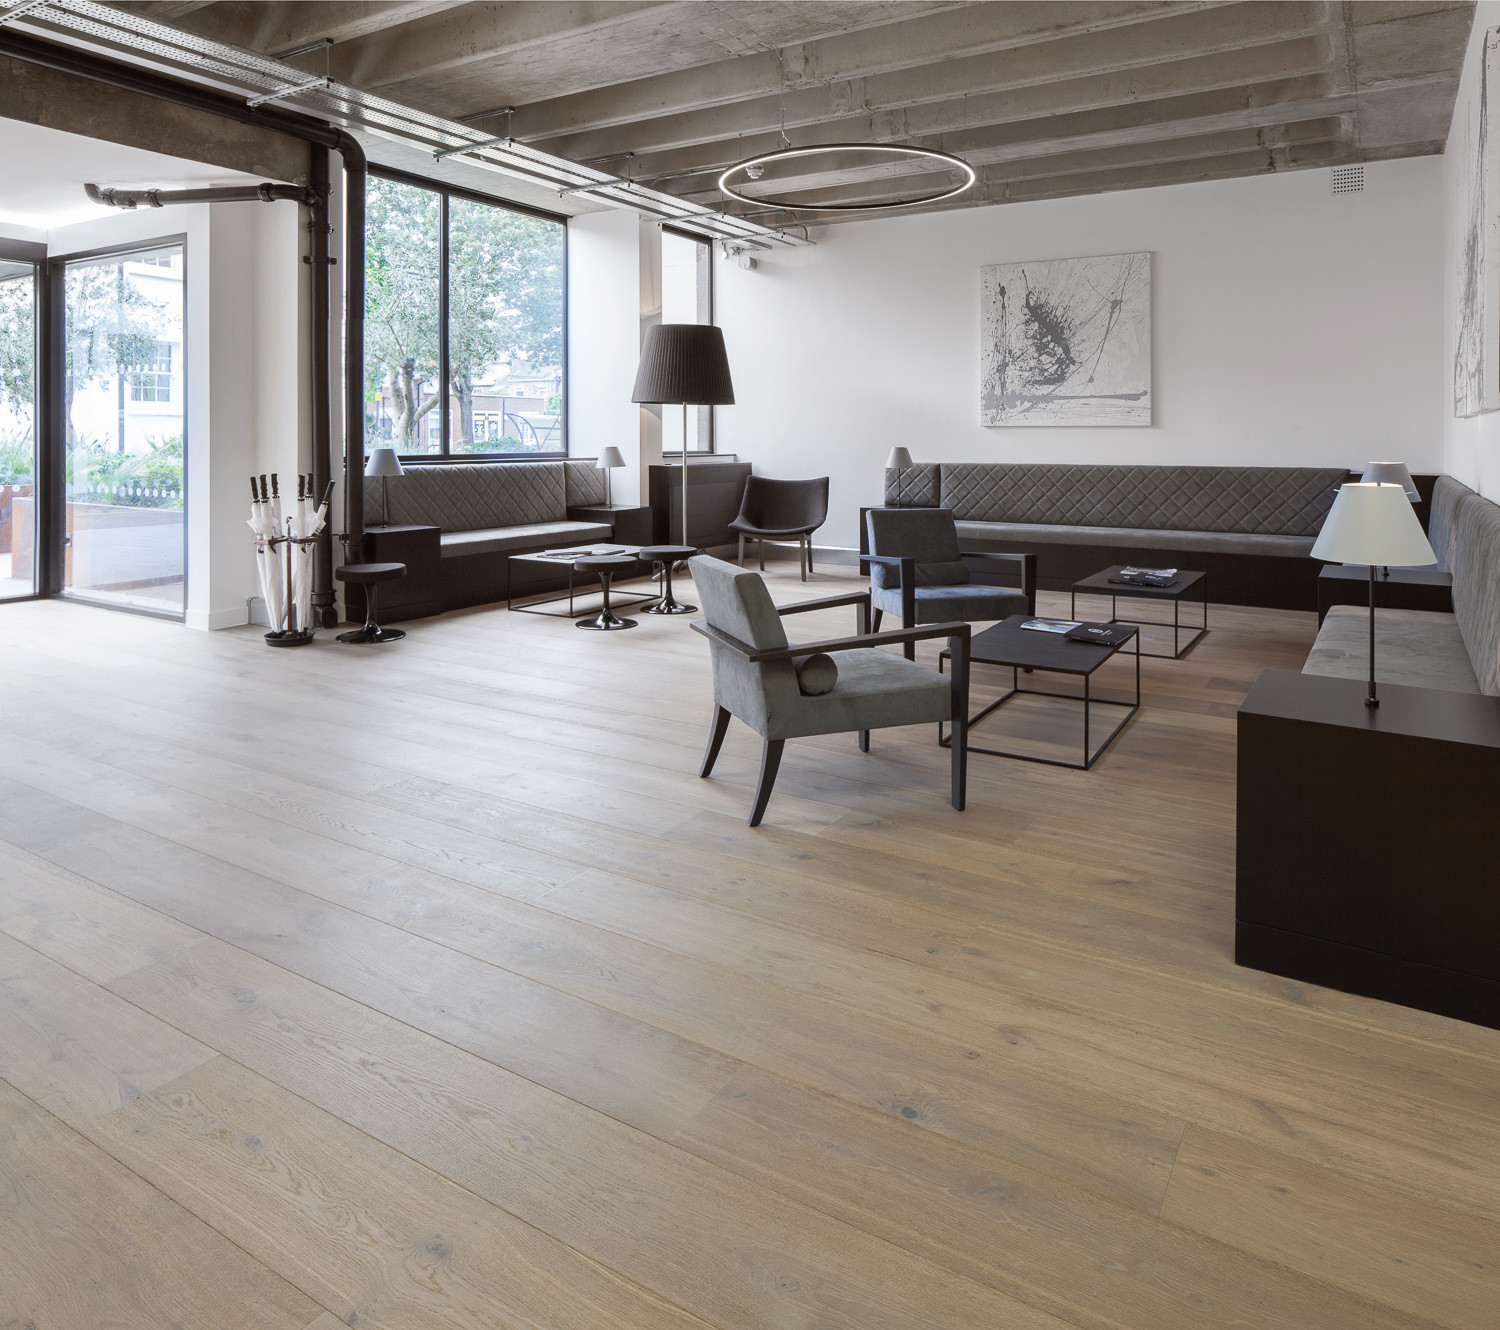 20 Spectacular How Much Does Hardwood Flooring Cost Per Square Foot 2021 free download how much does hardwood flooring cost per square foot of the new reclaimed flooring company within the report indicated that 82 of workers who were employed in places with eight or more wood